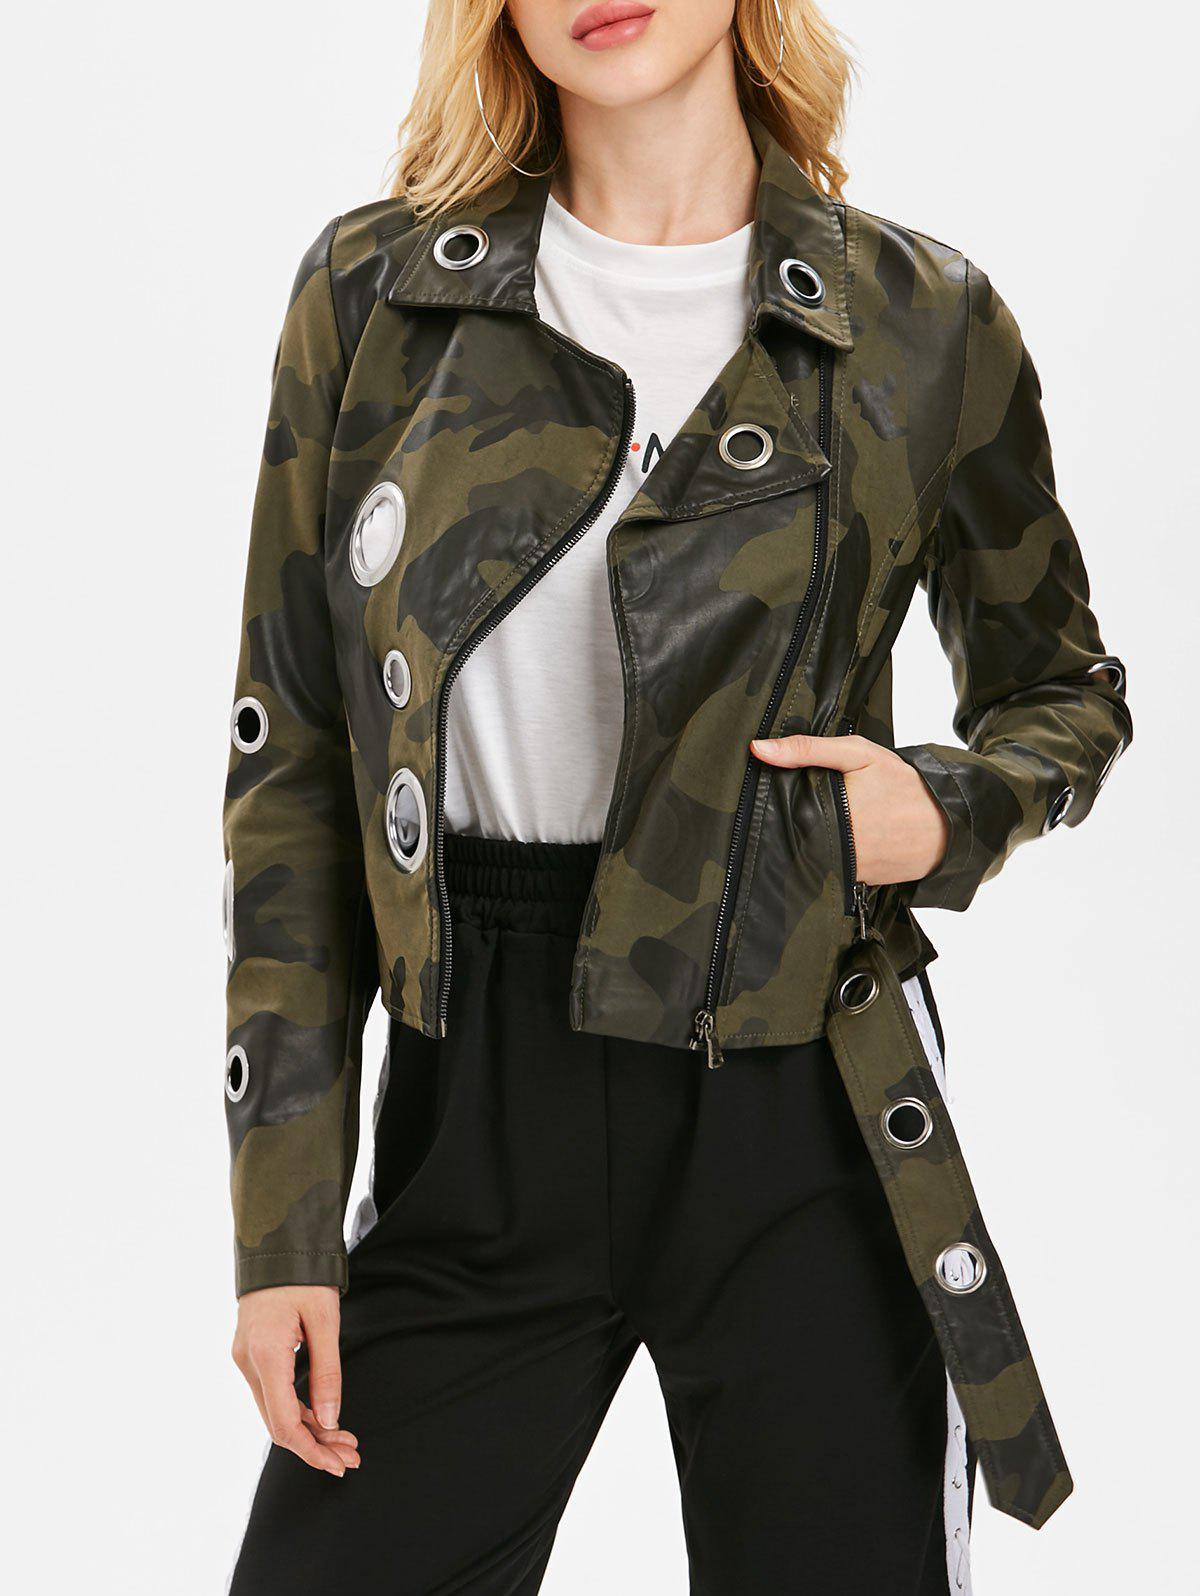 Camo Hollow Out Ring Motorcycle Jacket - CAMOUFLAGE GREEN L